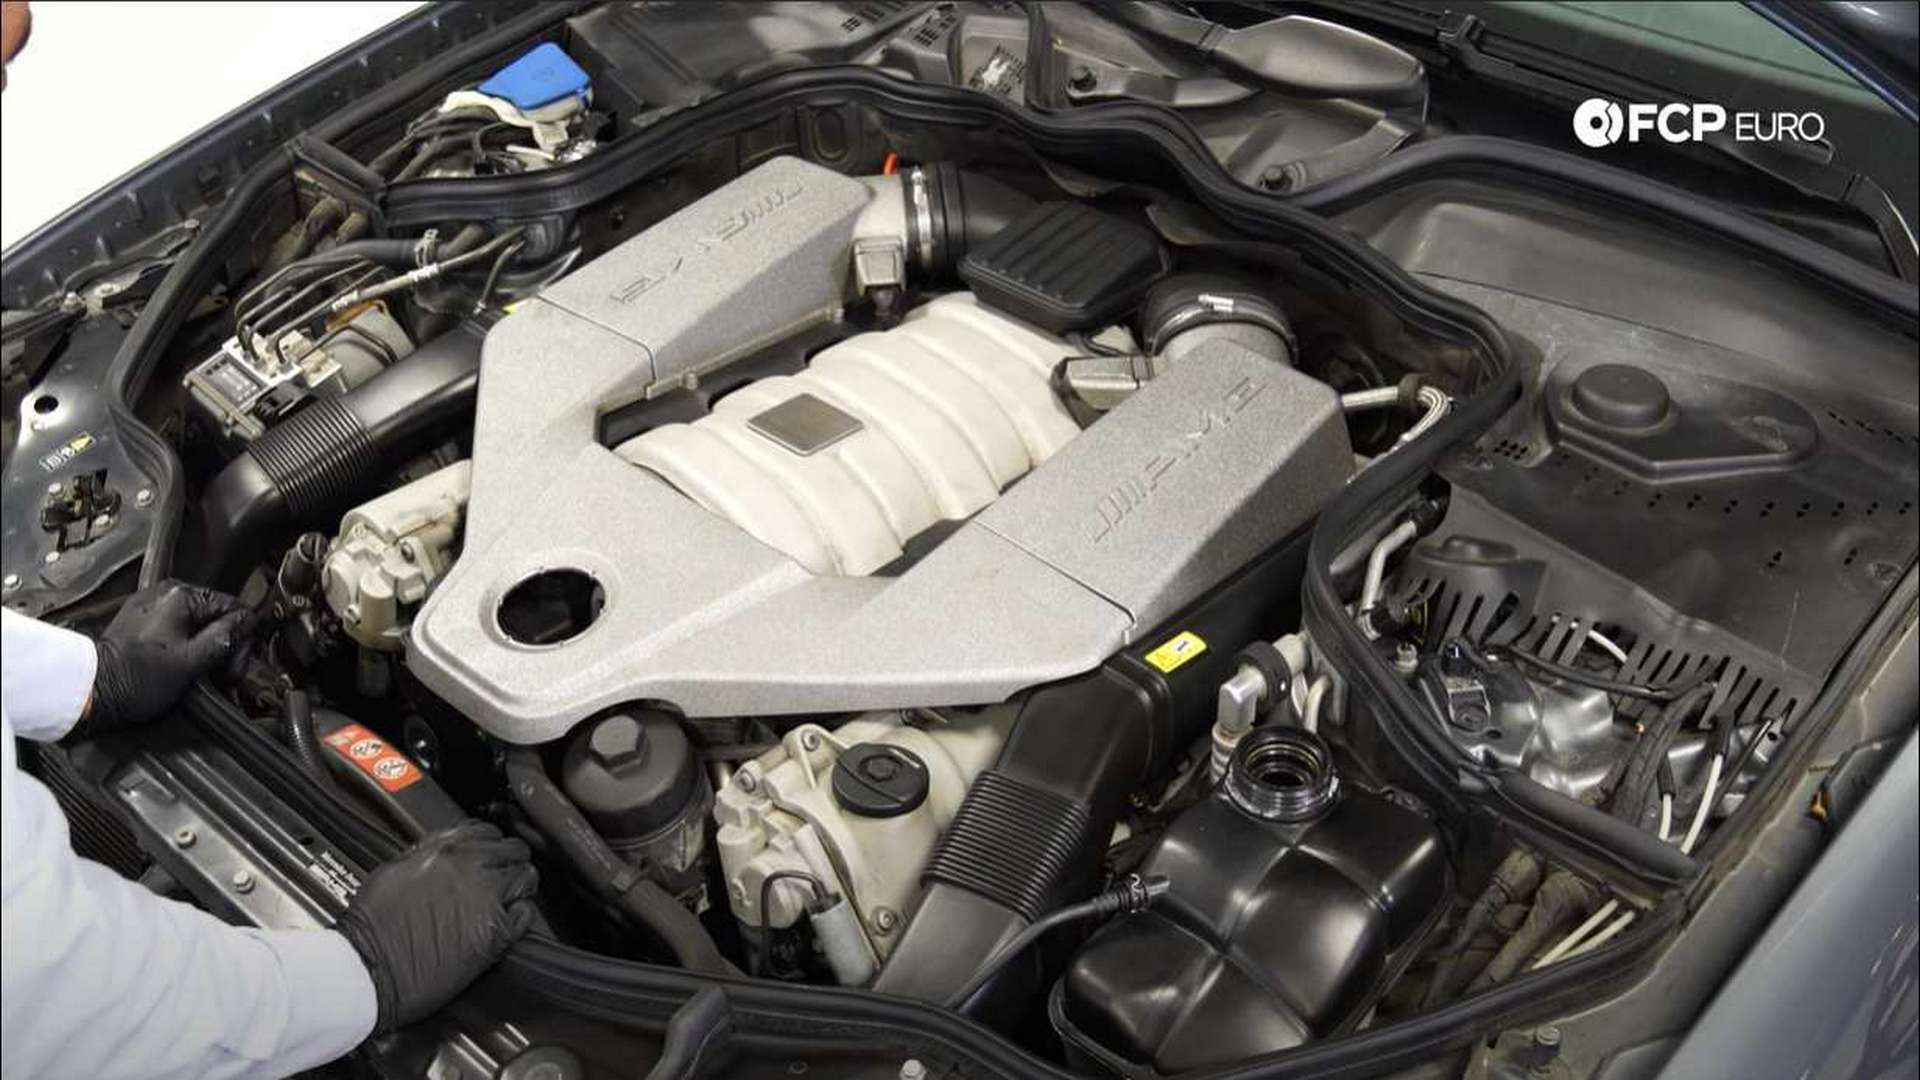 How To Replace The Thermostat On A Mercedes-Benz M156 Engine (C63 AMG, E63 AMG, SLS AMG & More)